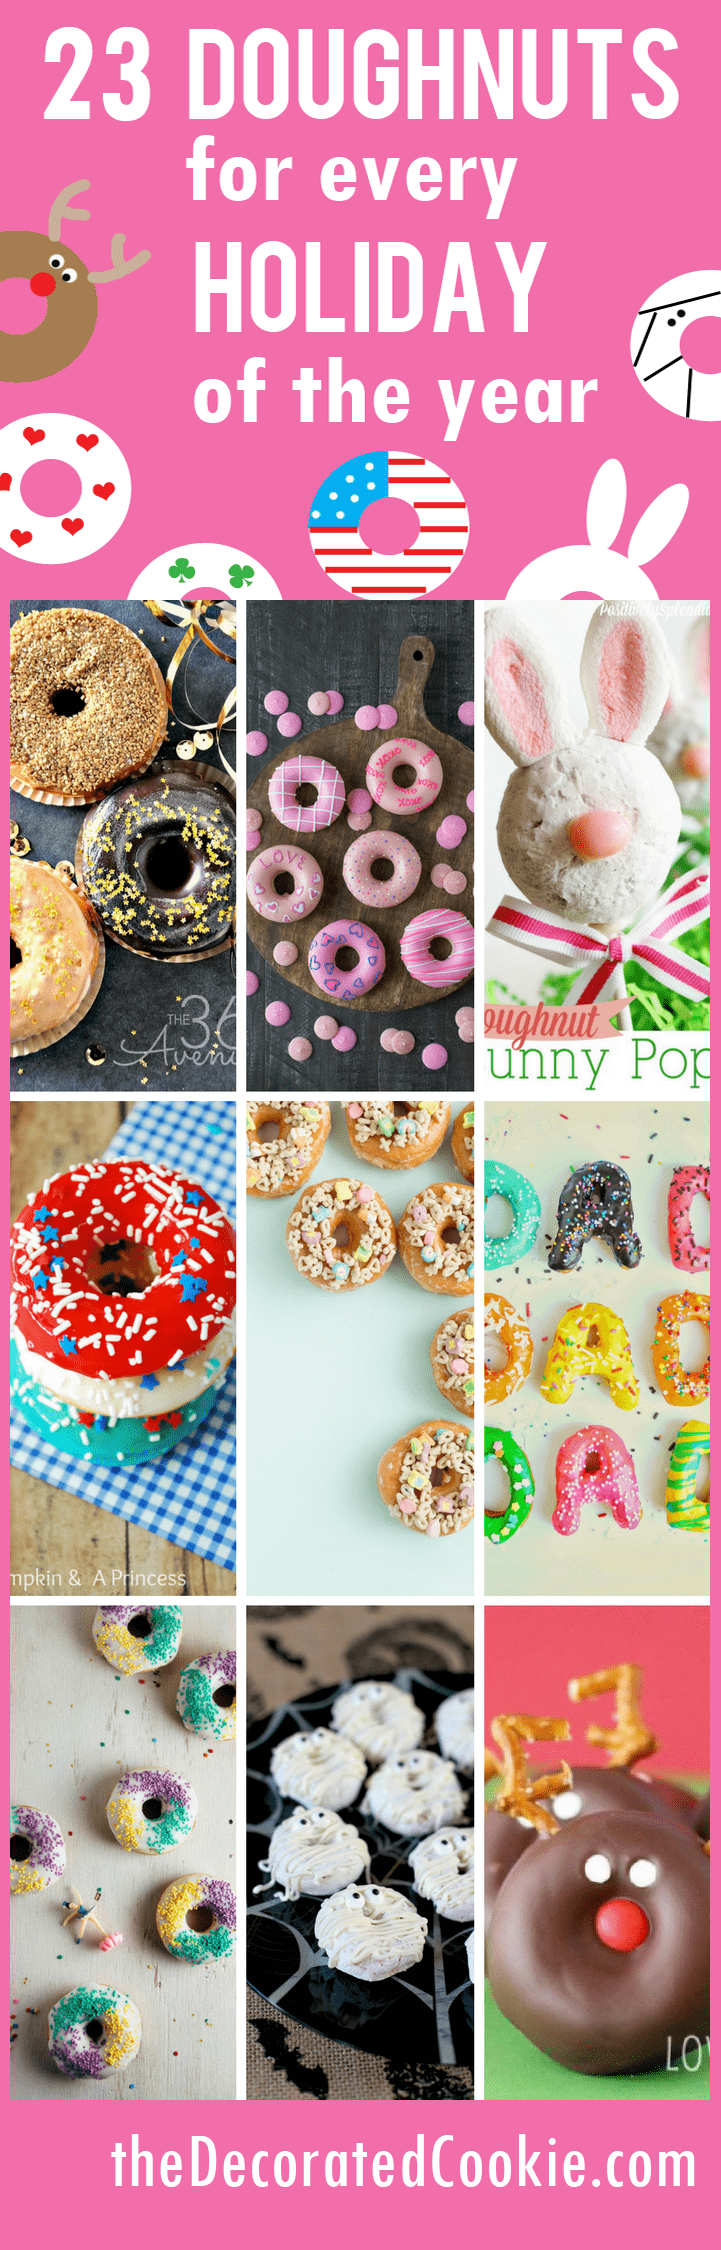 roundup of doughnuts for every holiday of the year